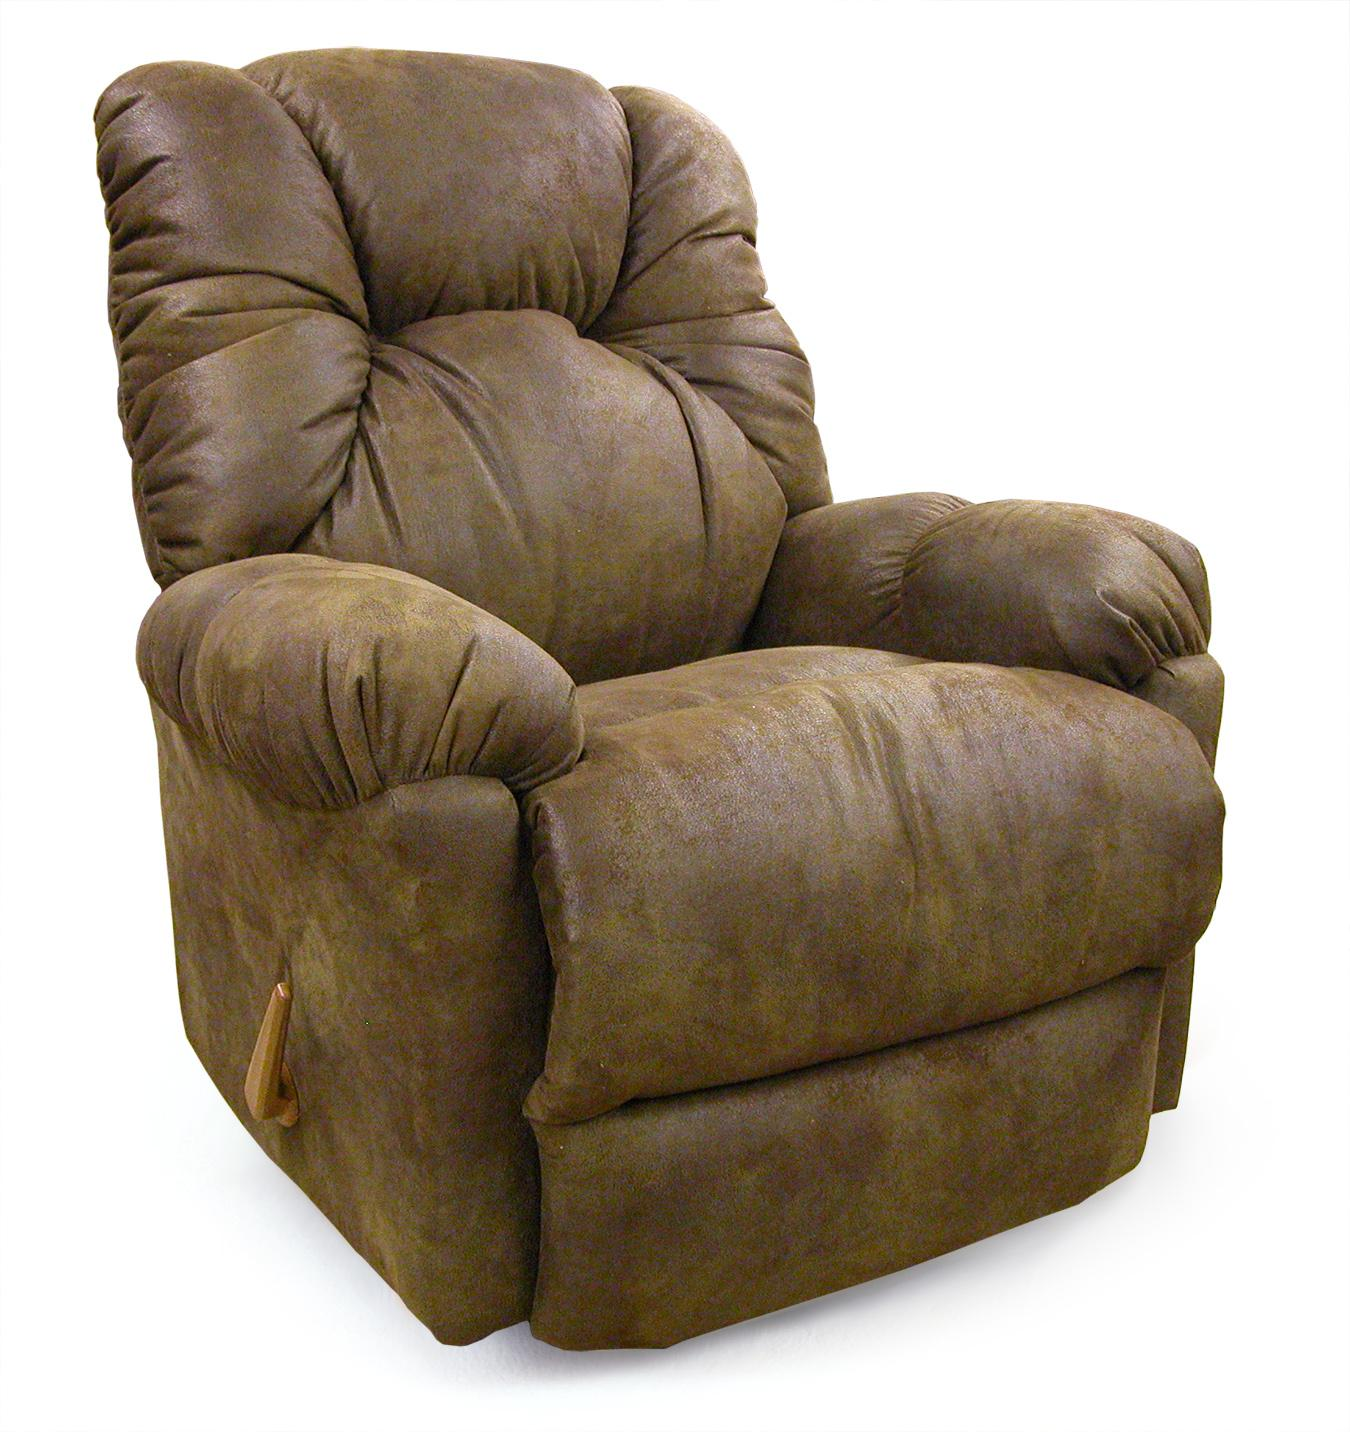 Best Home Furnishings Recliners - Medium Romulus Swivel Rocker Recliner - Item Number: 9MW59